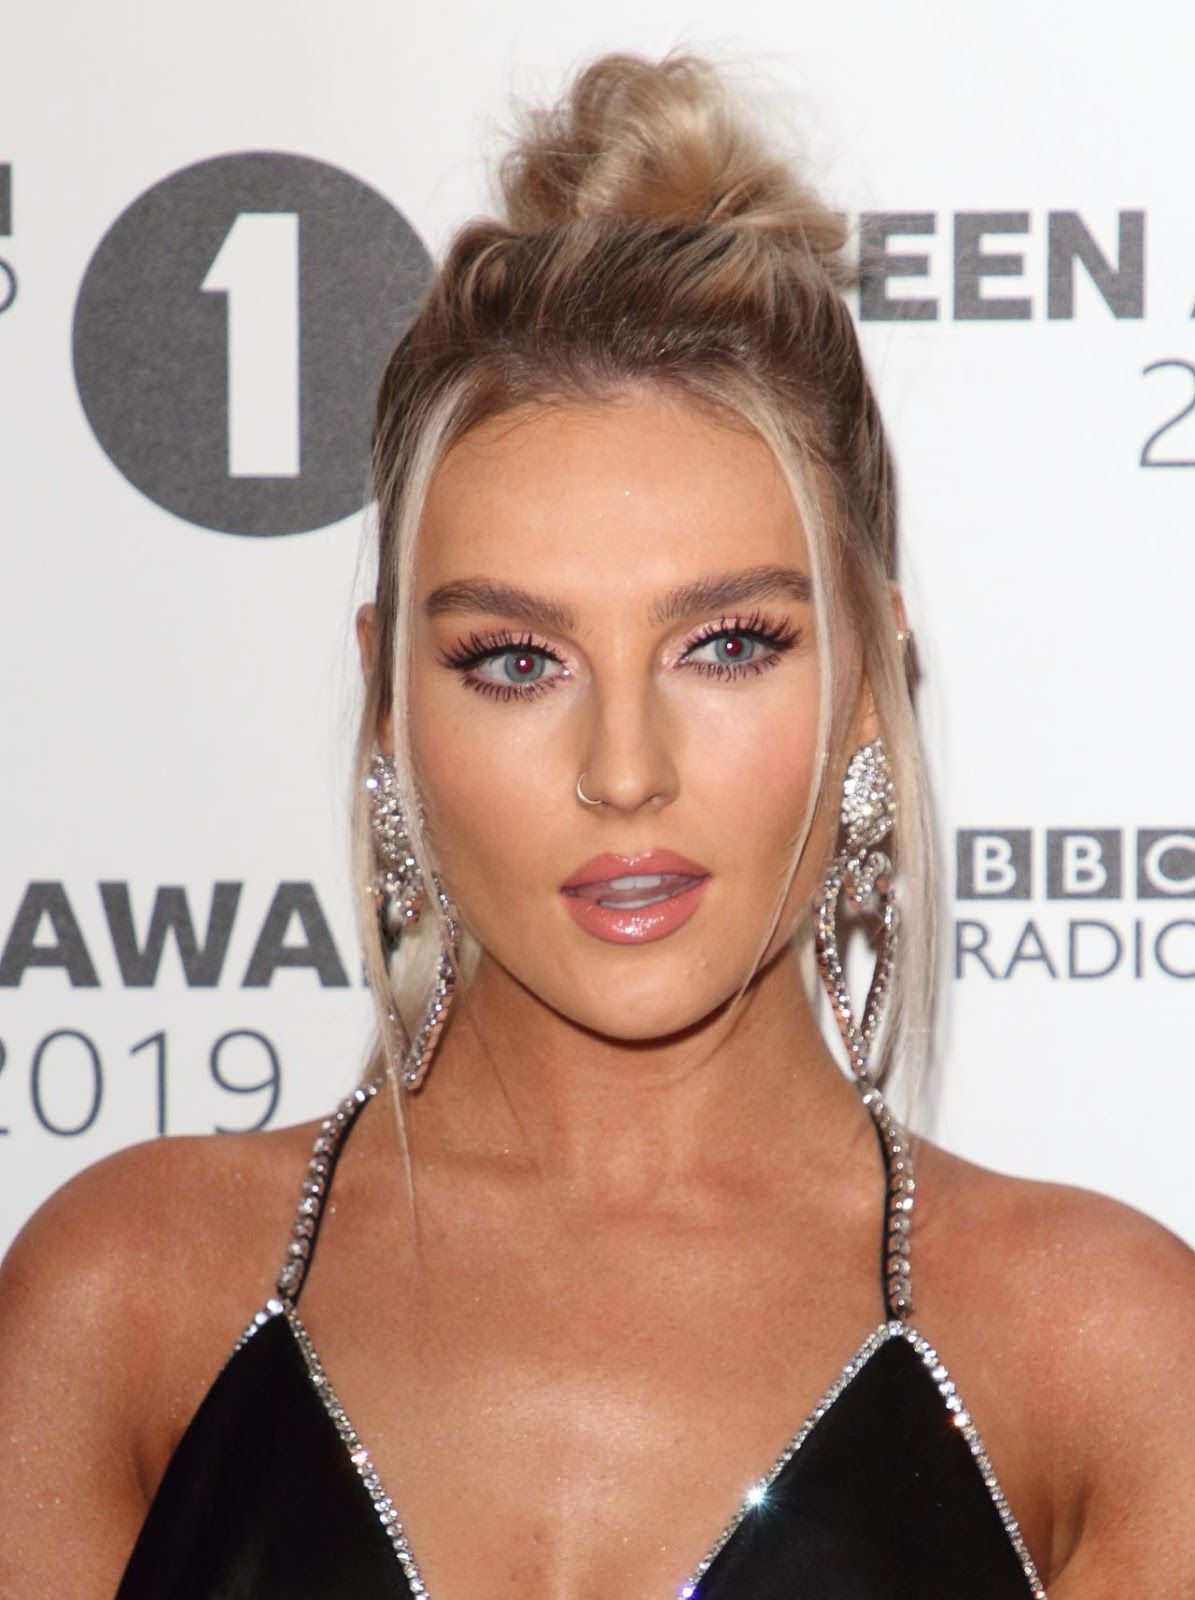 Perrie Edwards Evening Standard Theatre Awards 2019 in